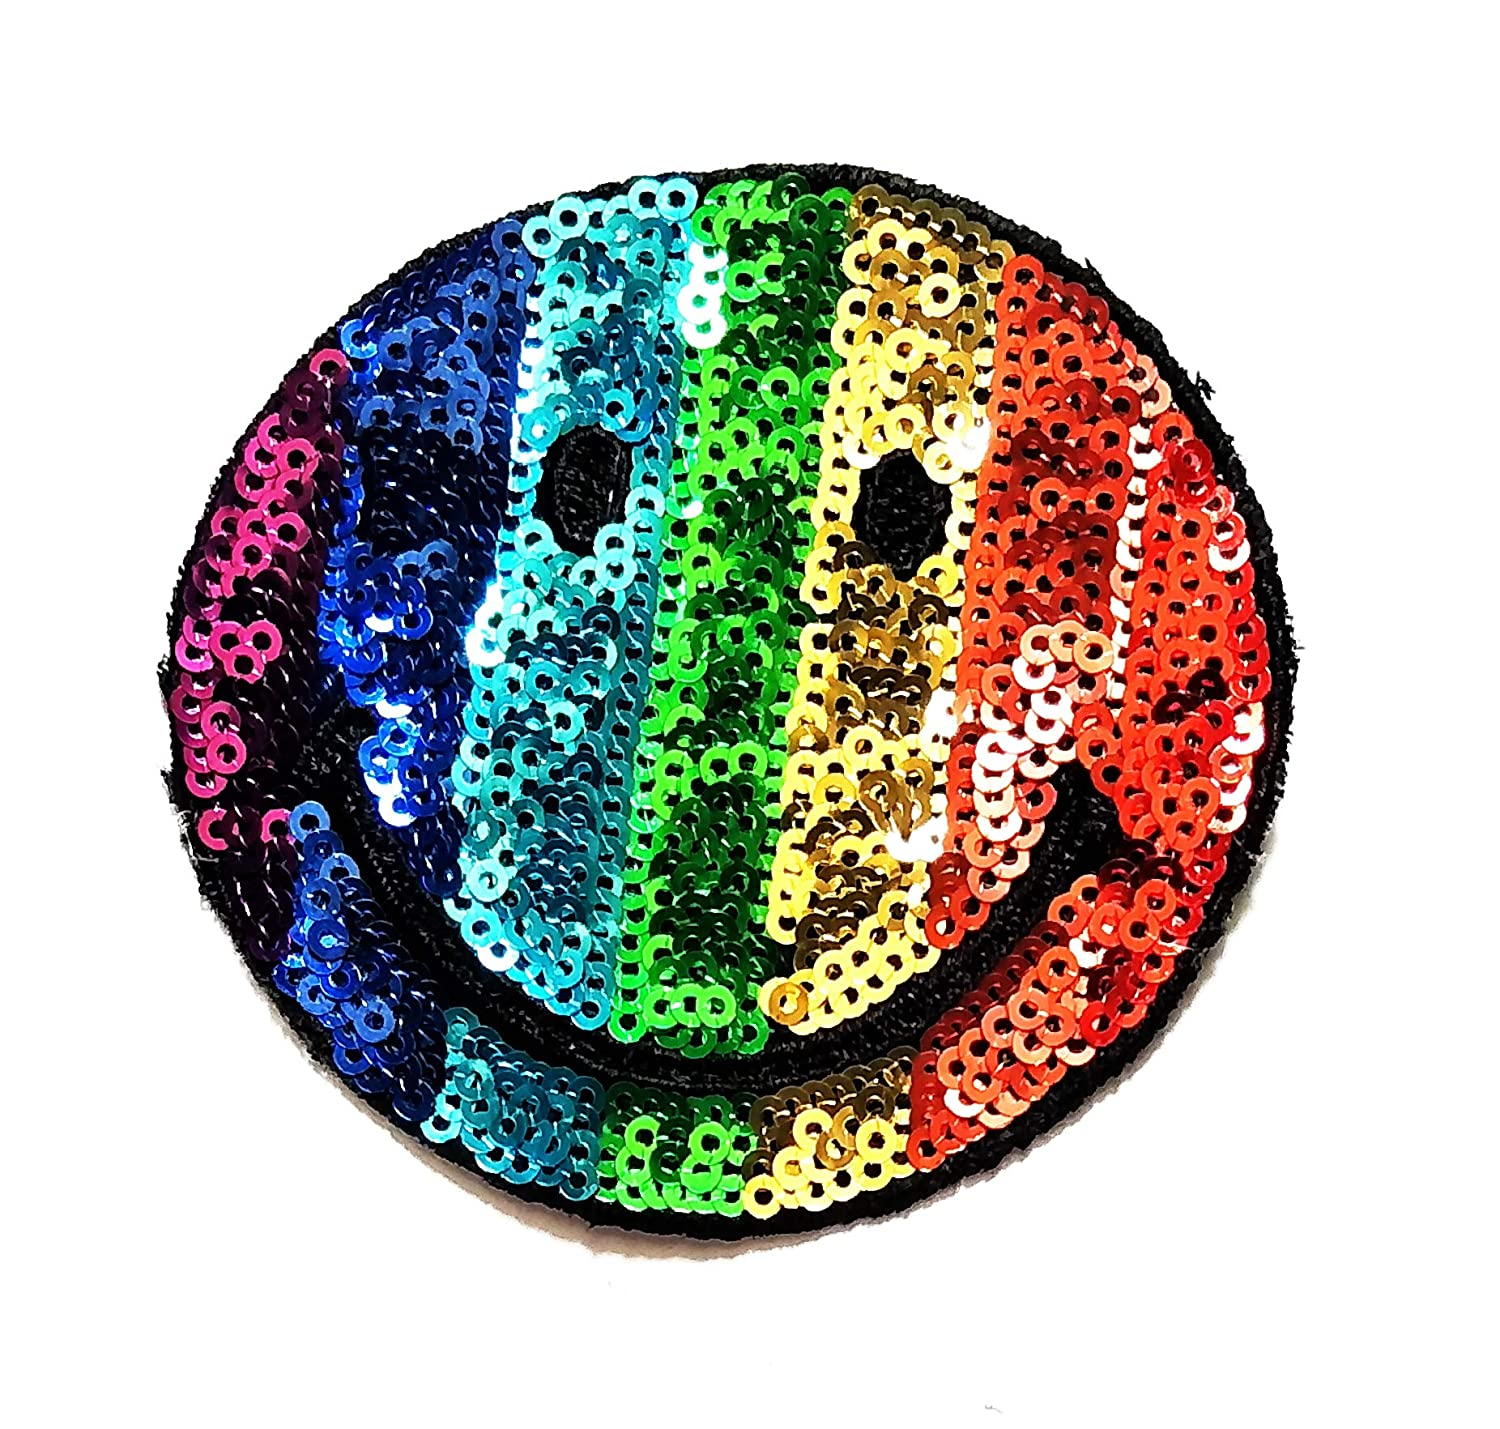 3'' X 3.2'' Sequin Rainbow Smile Happily in Good Day Cartoon Kids Logo Jacket t-Shirt Jeans Polo Patch Iron on Embroidered Logo Sign Badge Comics Cartoon Patch by Tour les jours Shop